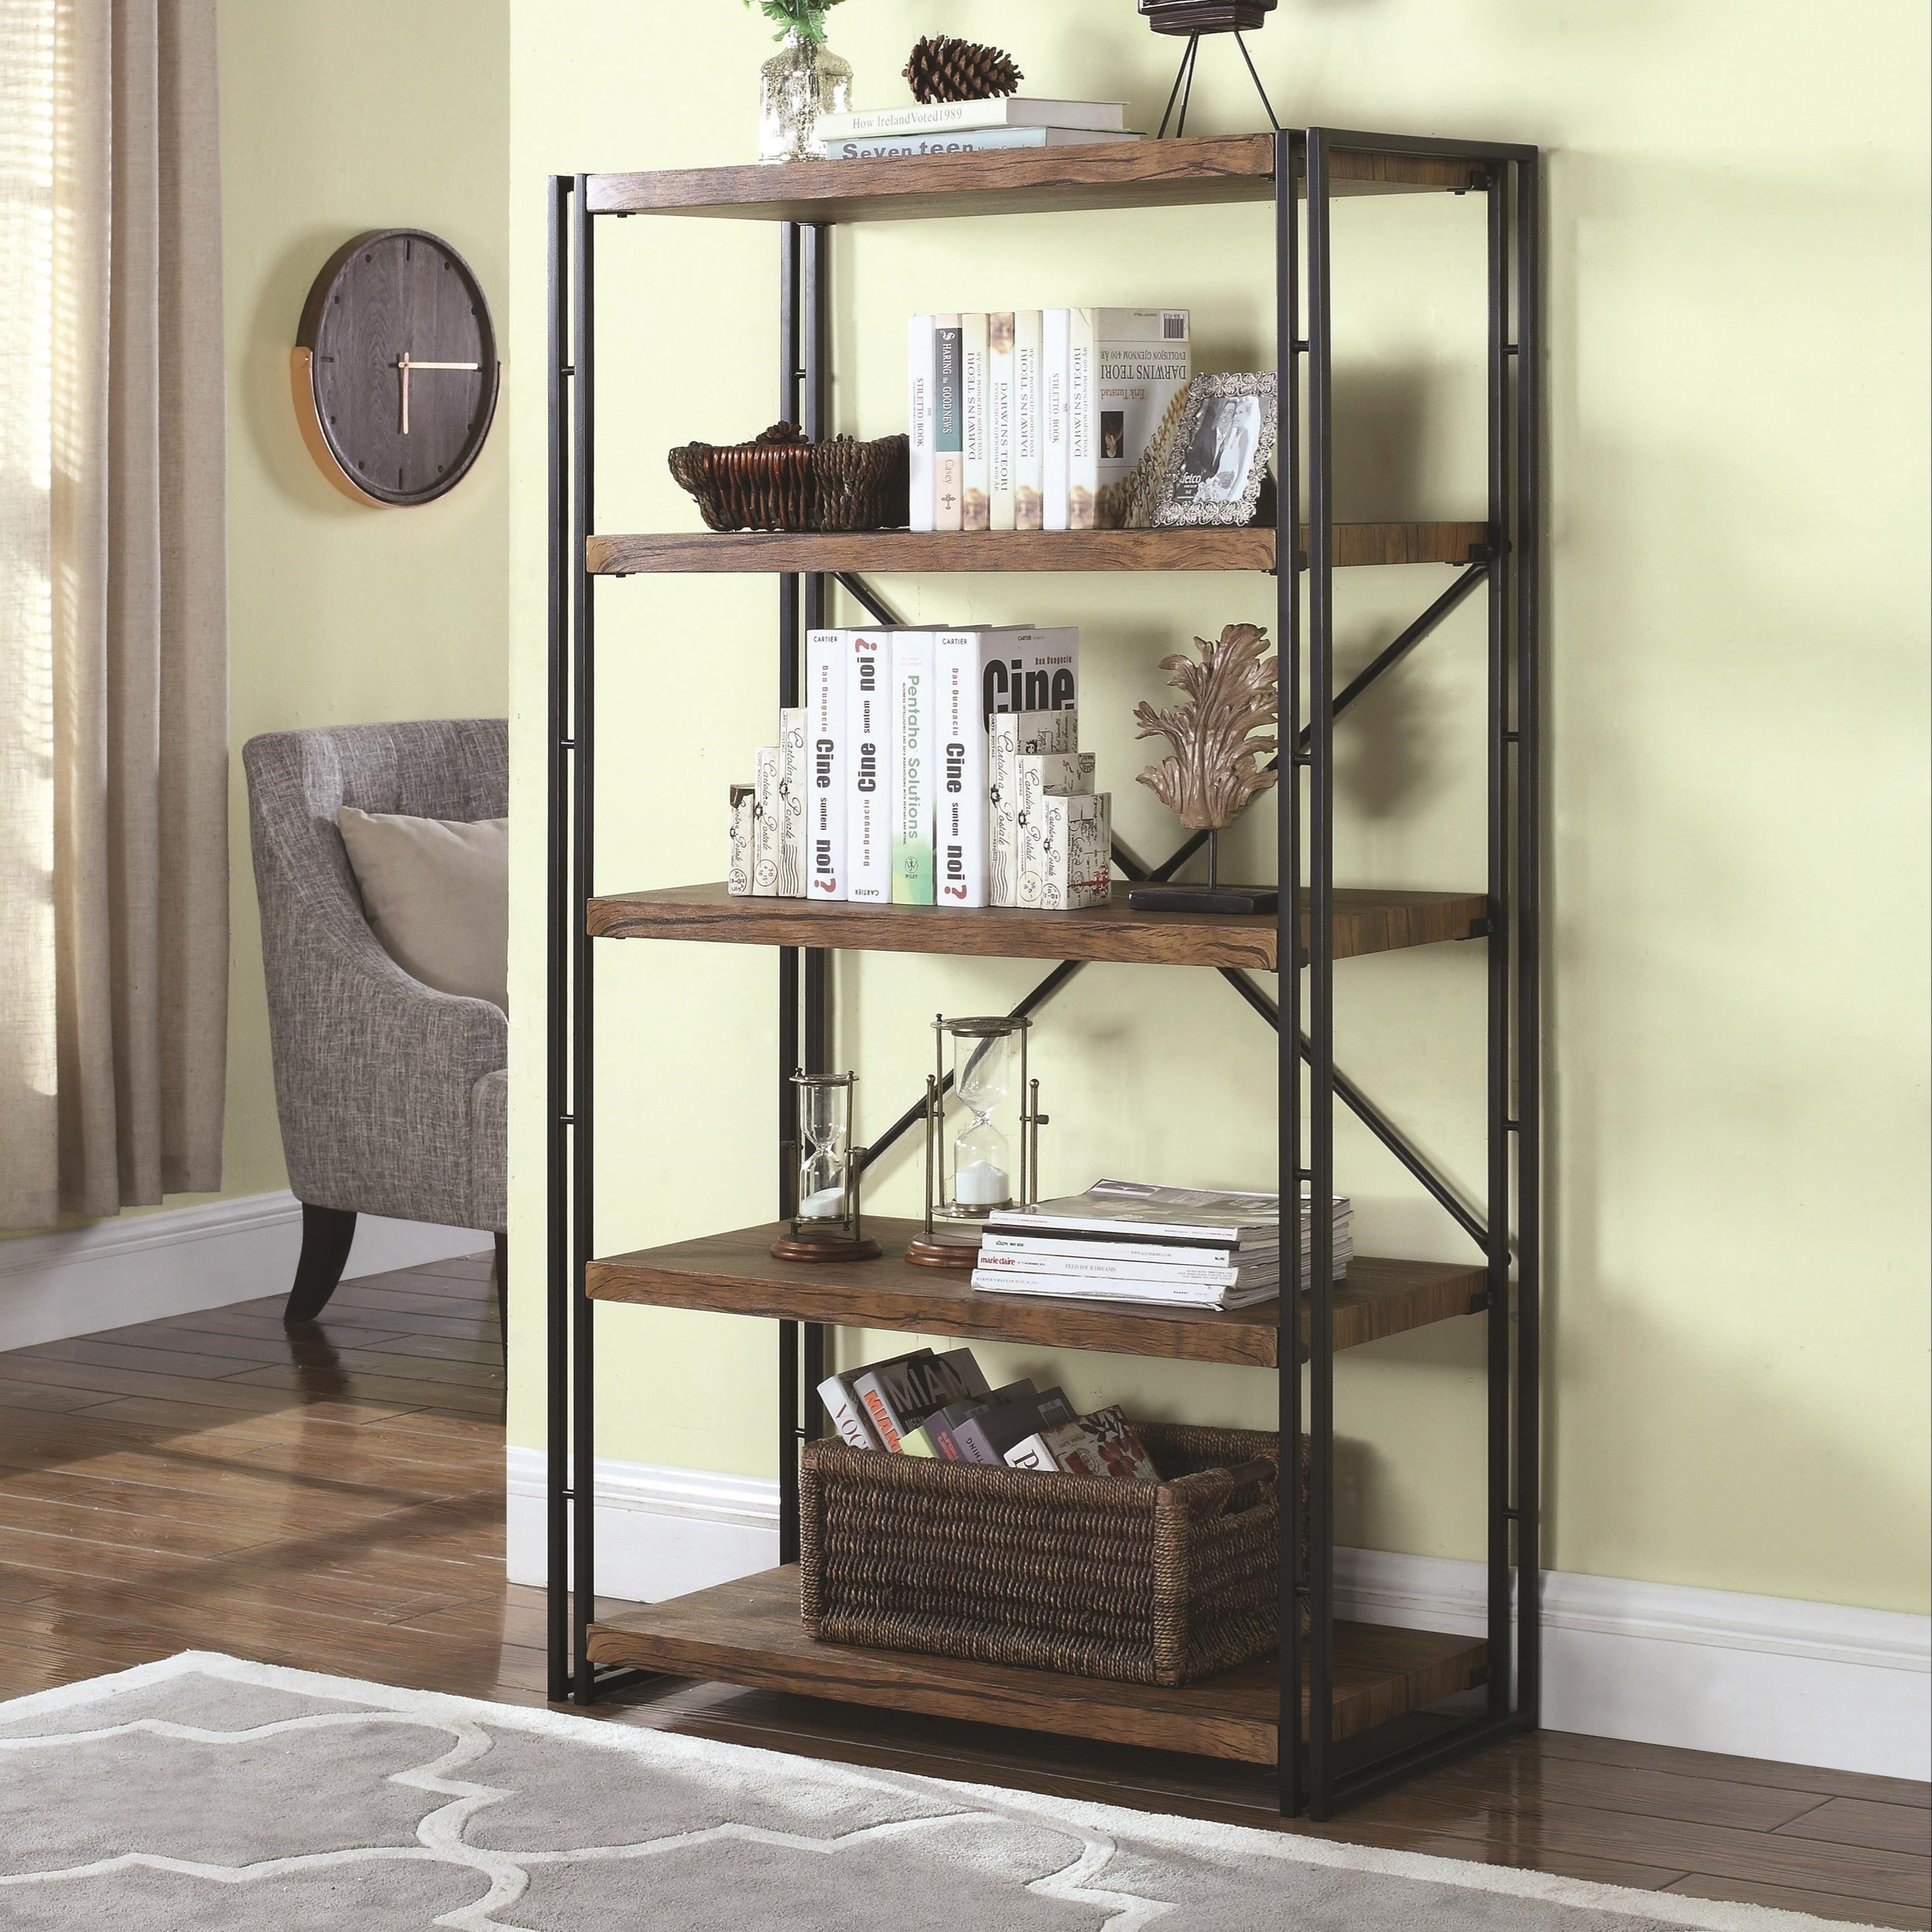 bookcase best accessories storages metal most of narrow furniture and ideas for furnitureastounding released wood bookcases recently intended accent